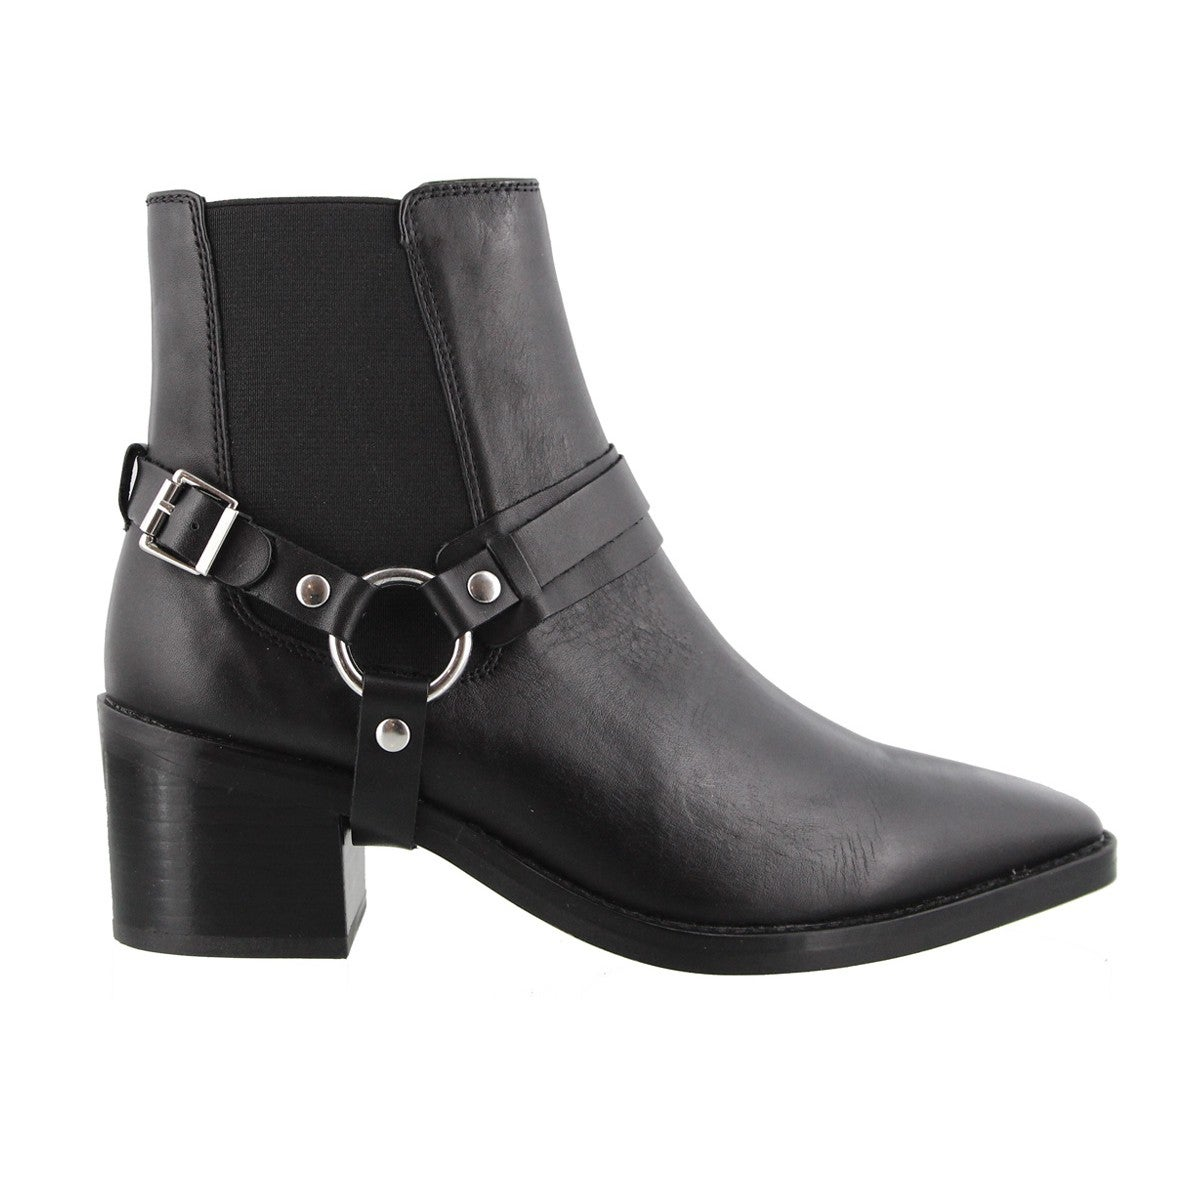 e2d560c8b595 Best Black Boots and Booties To Buy For Fall 2018